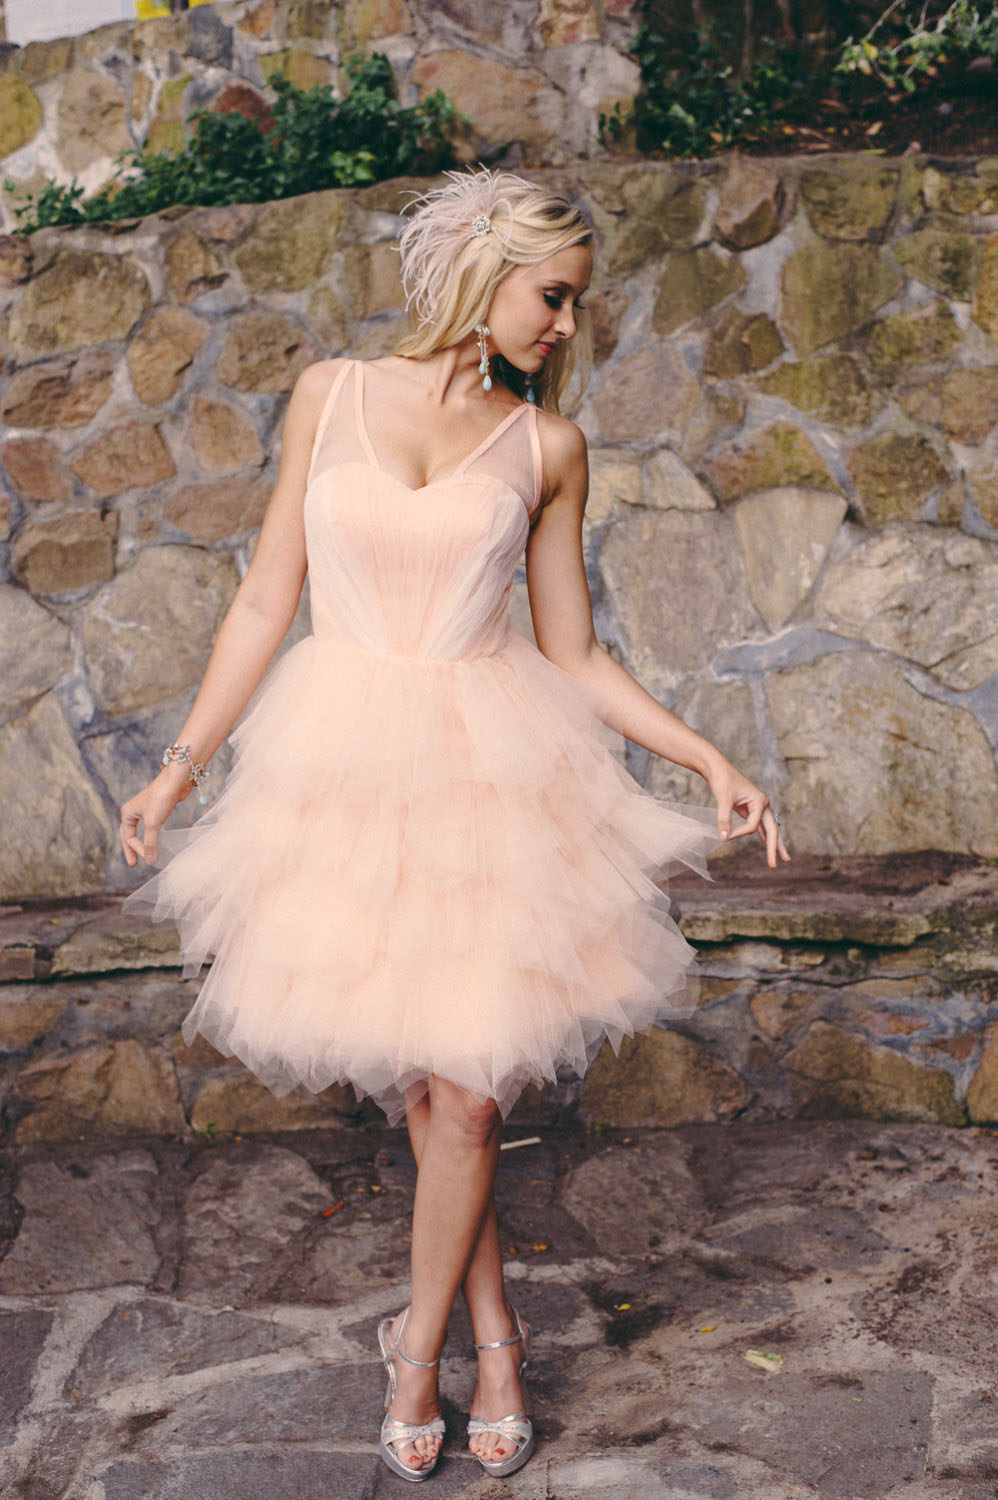 knee-length-blush-colored-layered-organza-short-informal-wedding-dress-1 25+ Women Engagement Outfit Ideas Coming in 2020